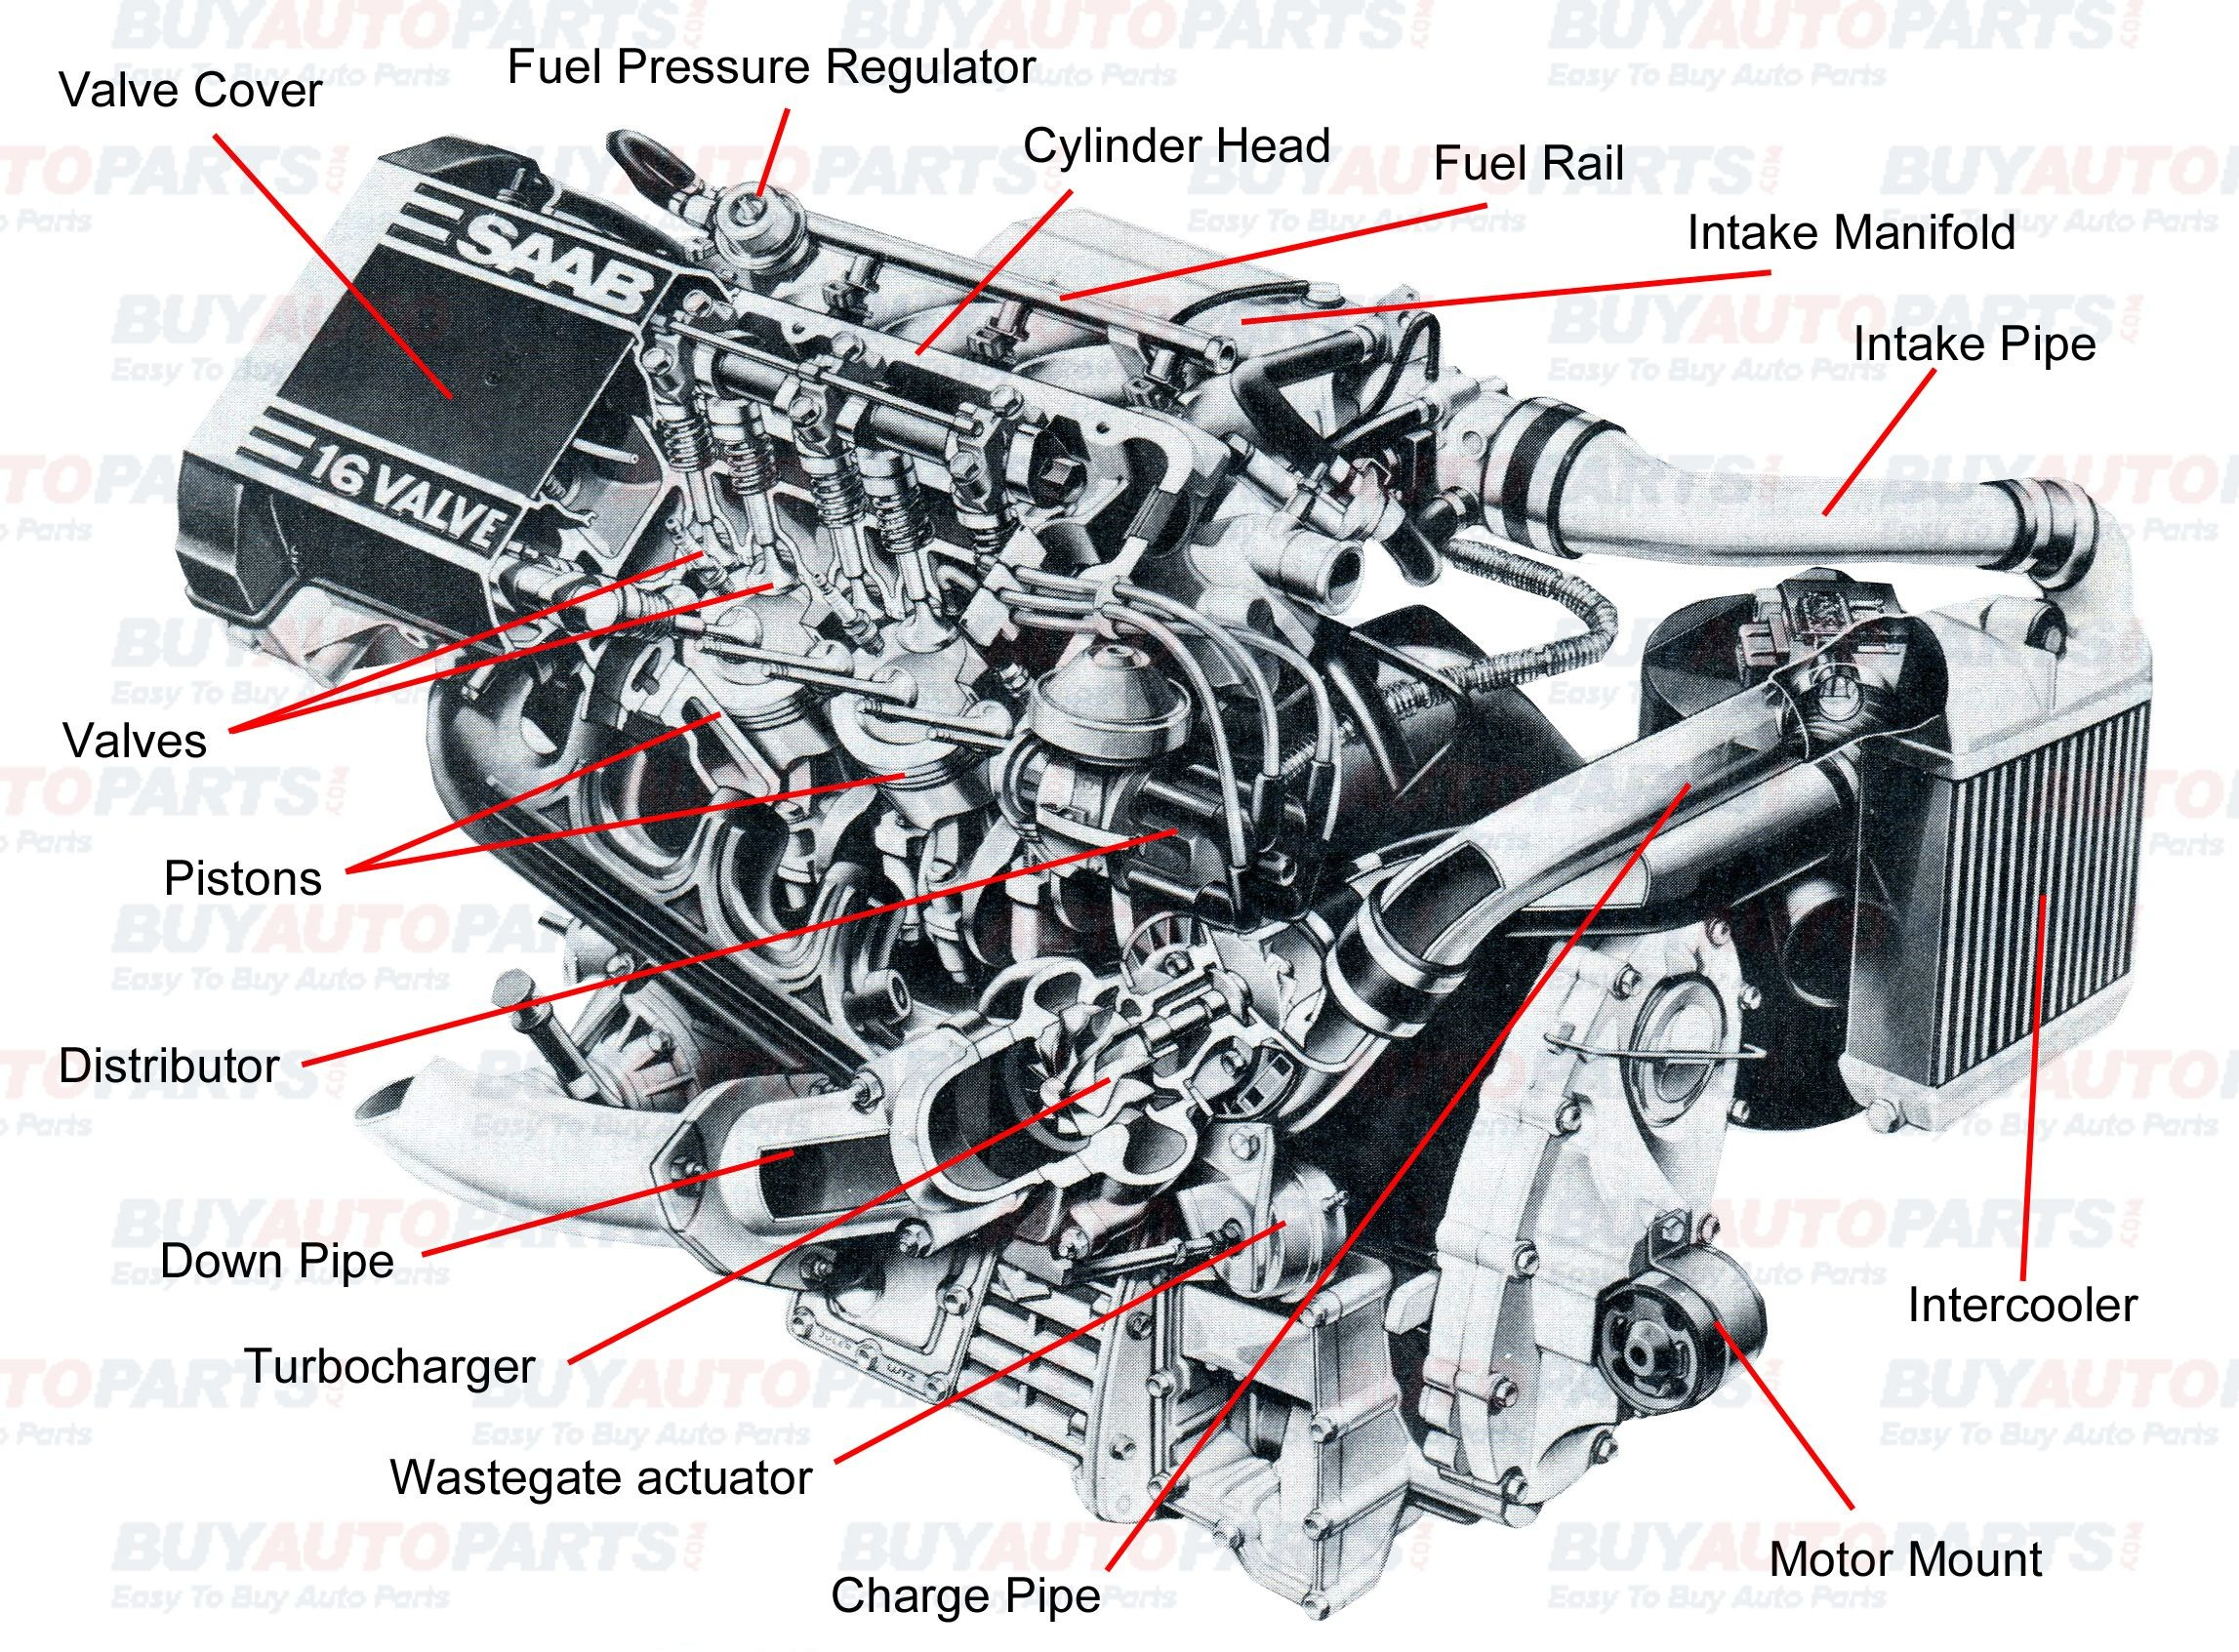 Bmw Car Parts Diagram All Internal Bustion Engines Have the Same Basic Ponents the Of Bmw Car Parts Diagram